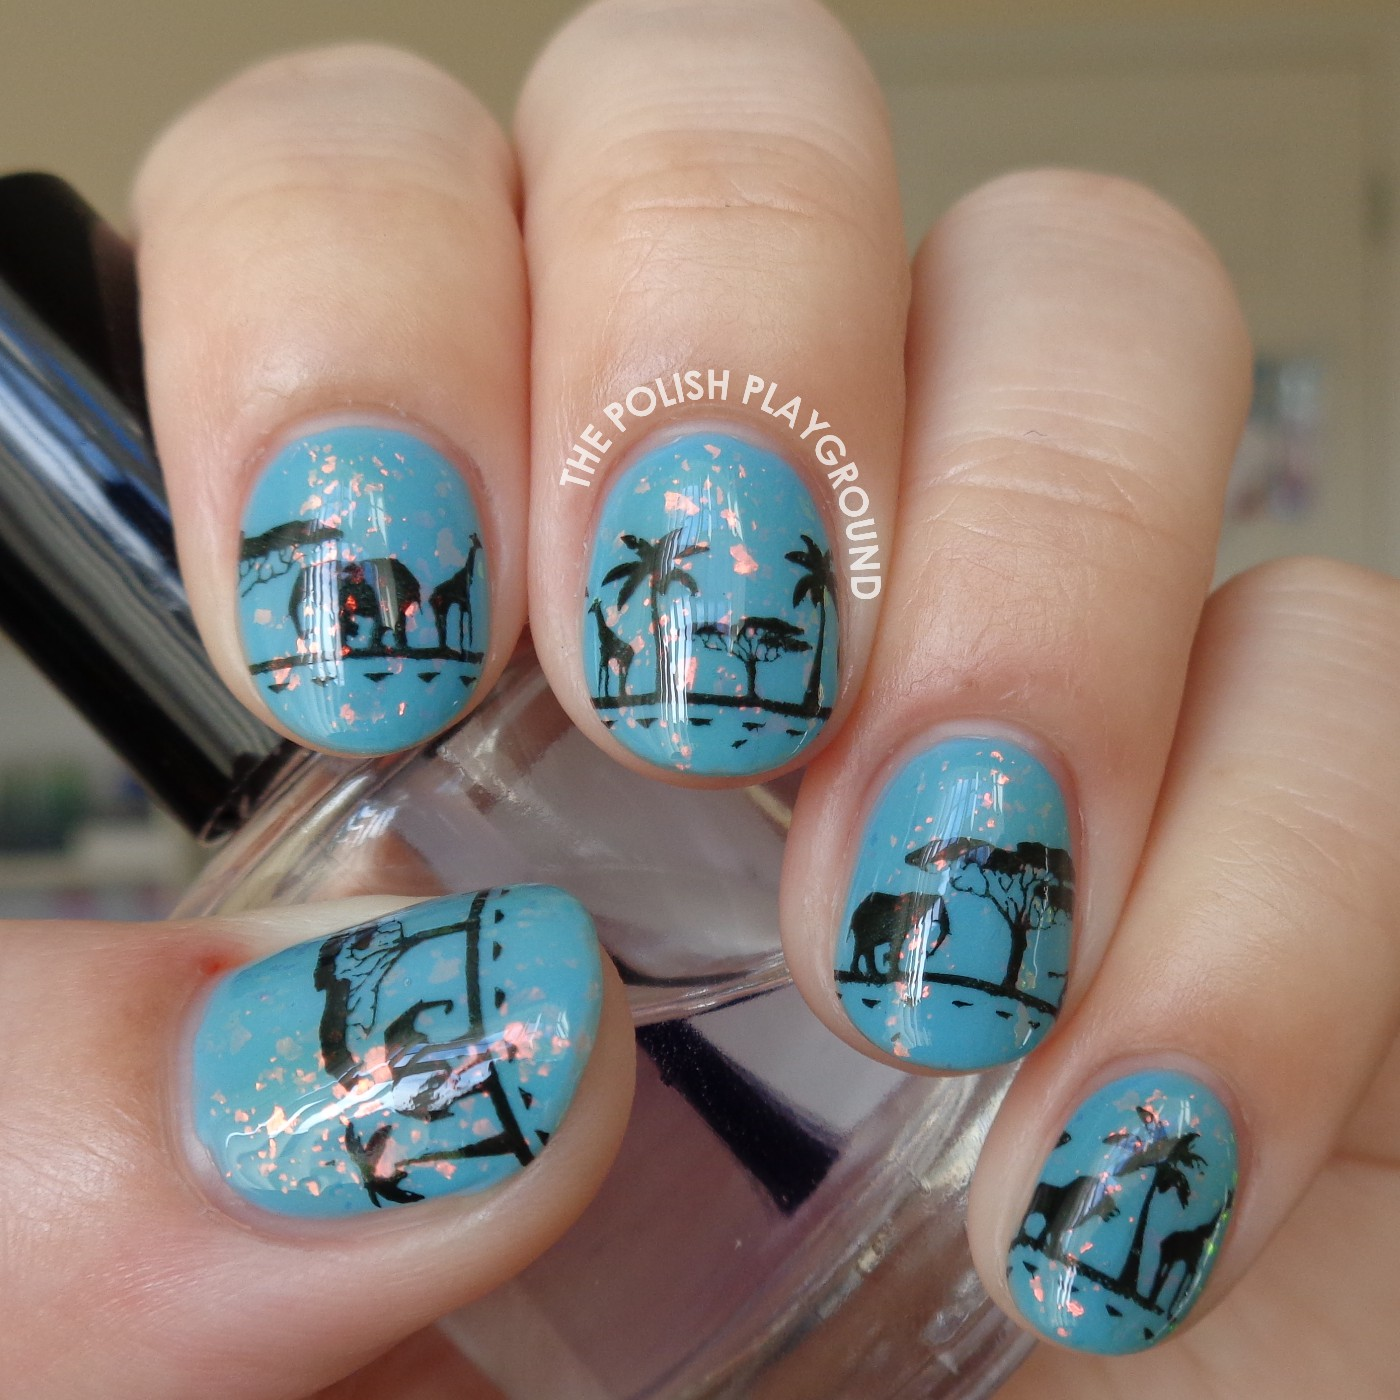 The Safari Desert Stamping Nail Art